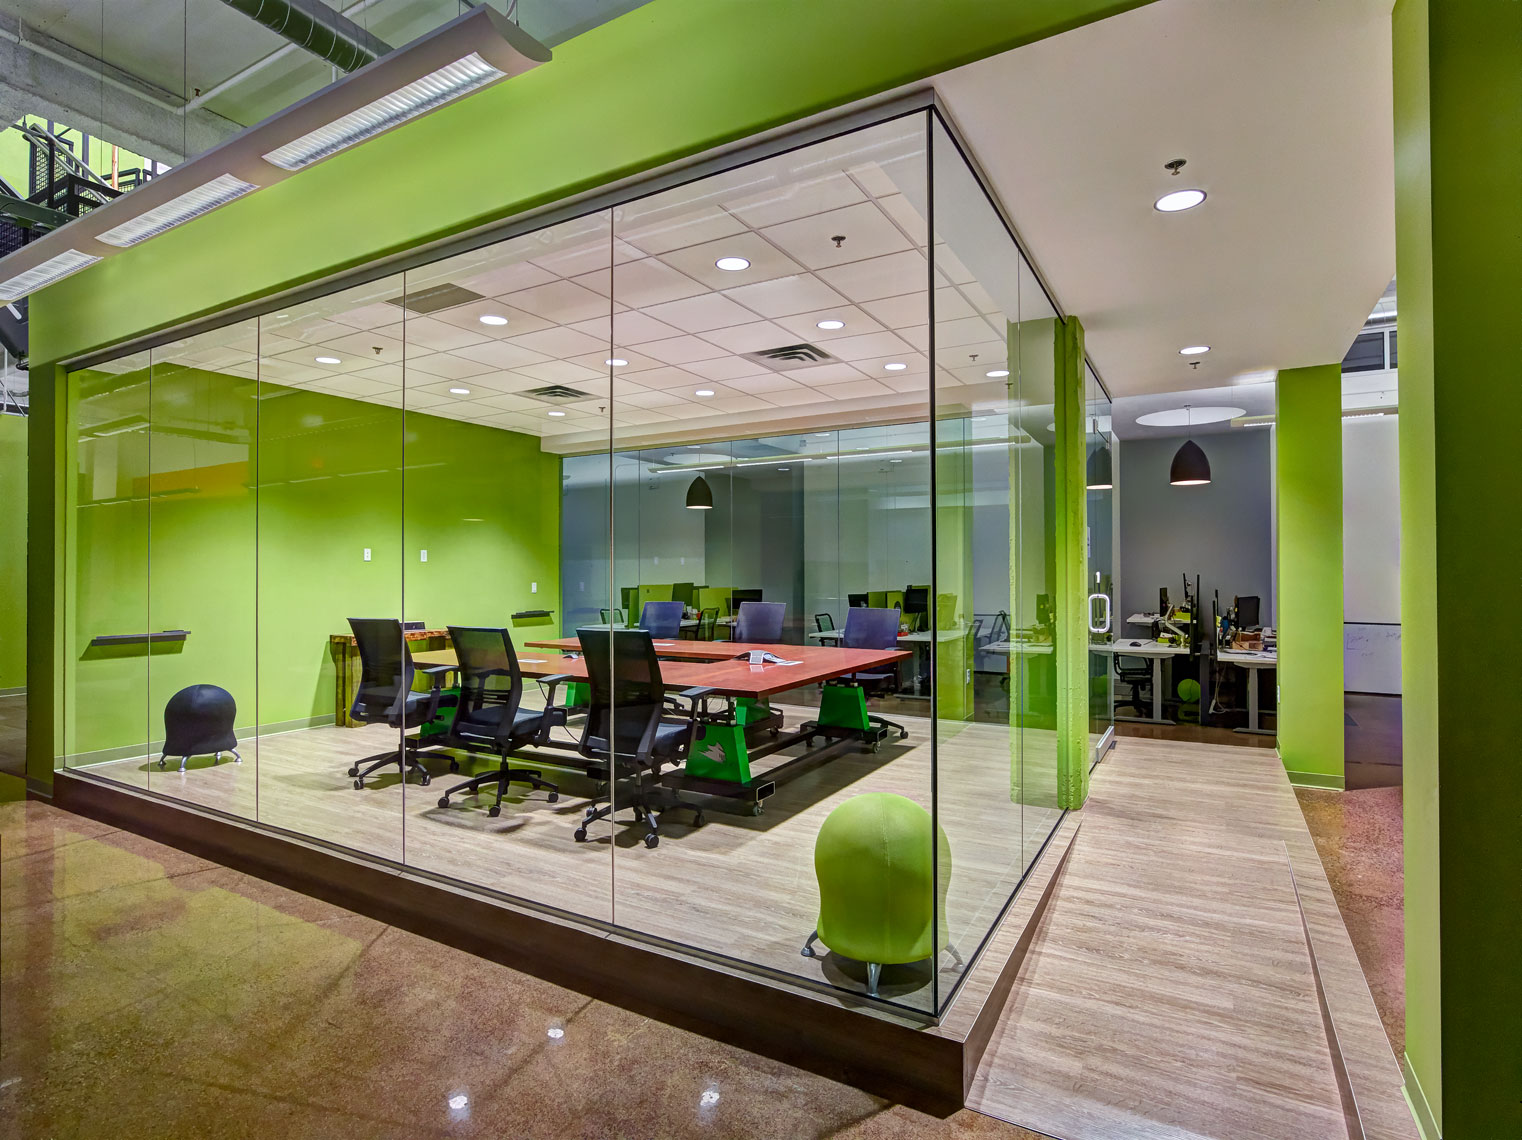 Green glass walled conference room/architectural photo